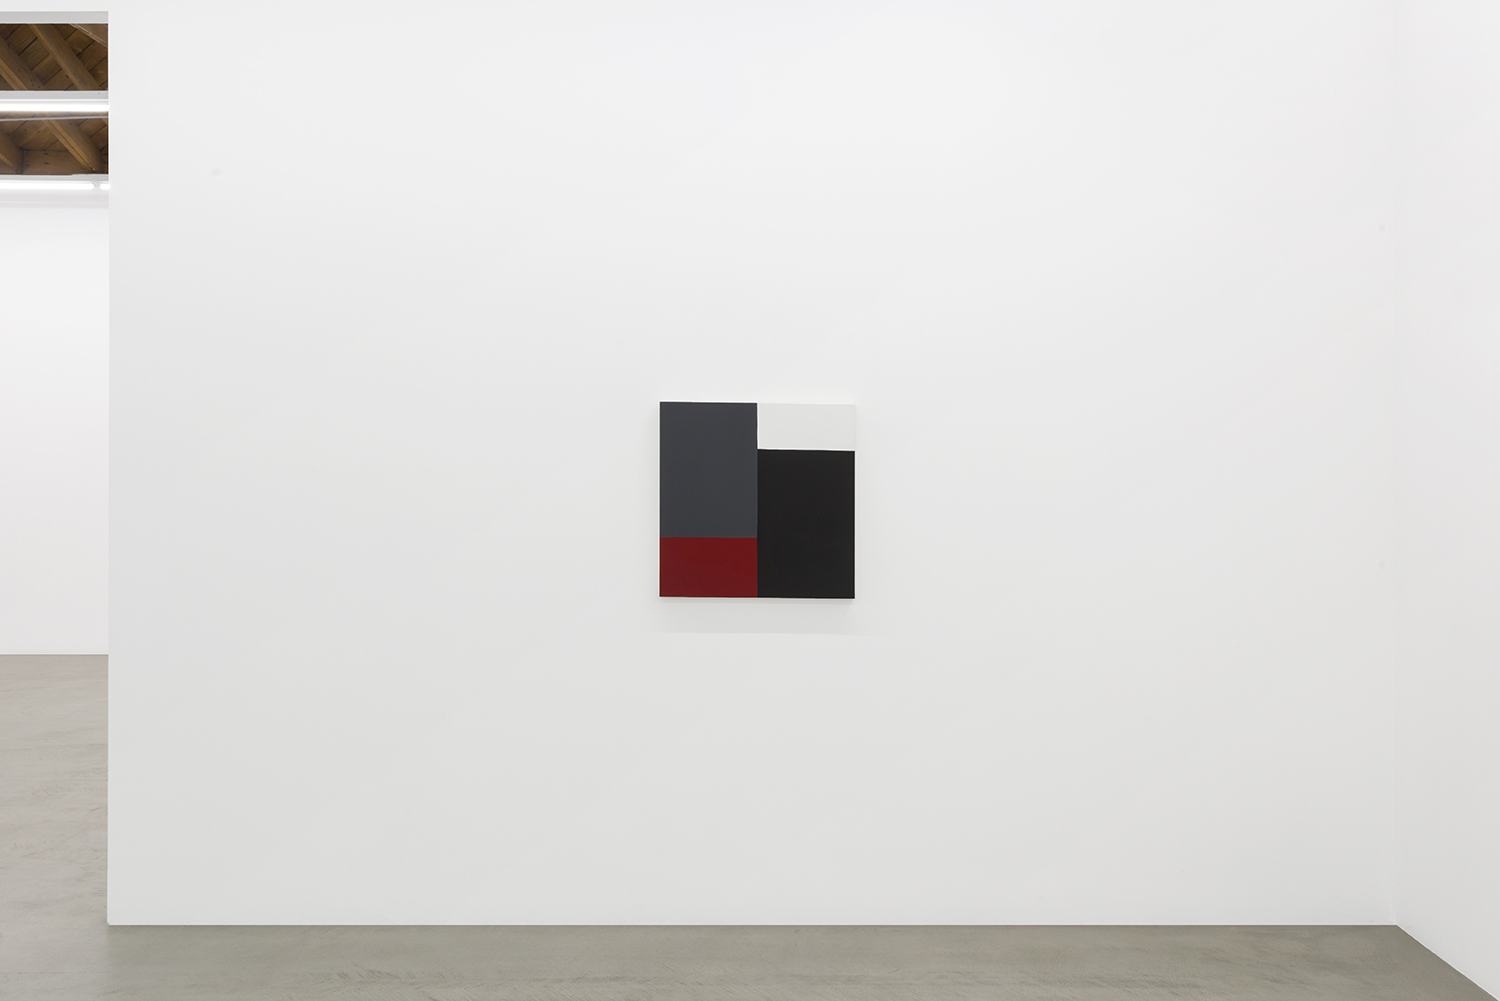 Edith Baumann's earliest paintings from 1977 showing a grid of grey, red, white and black